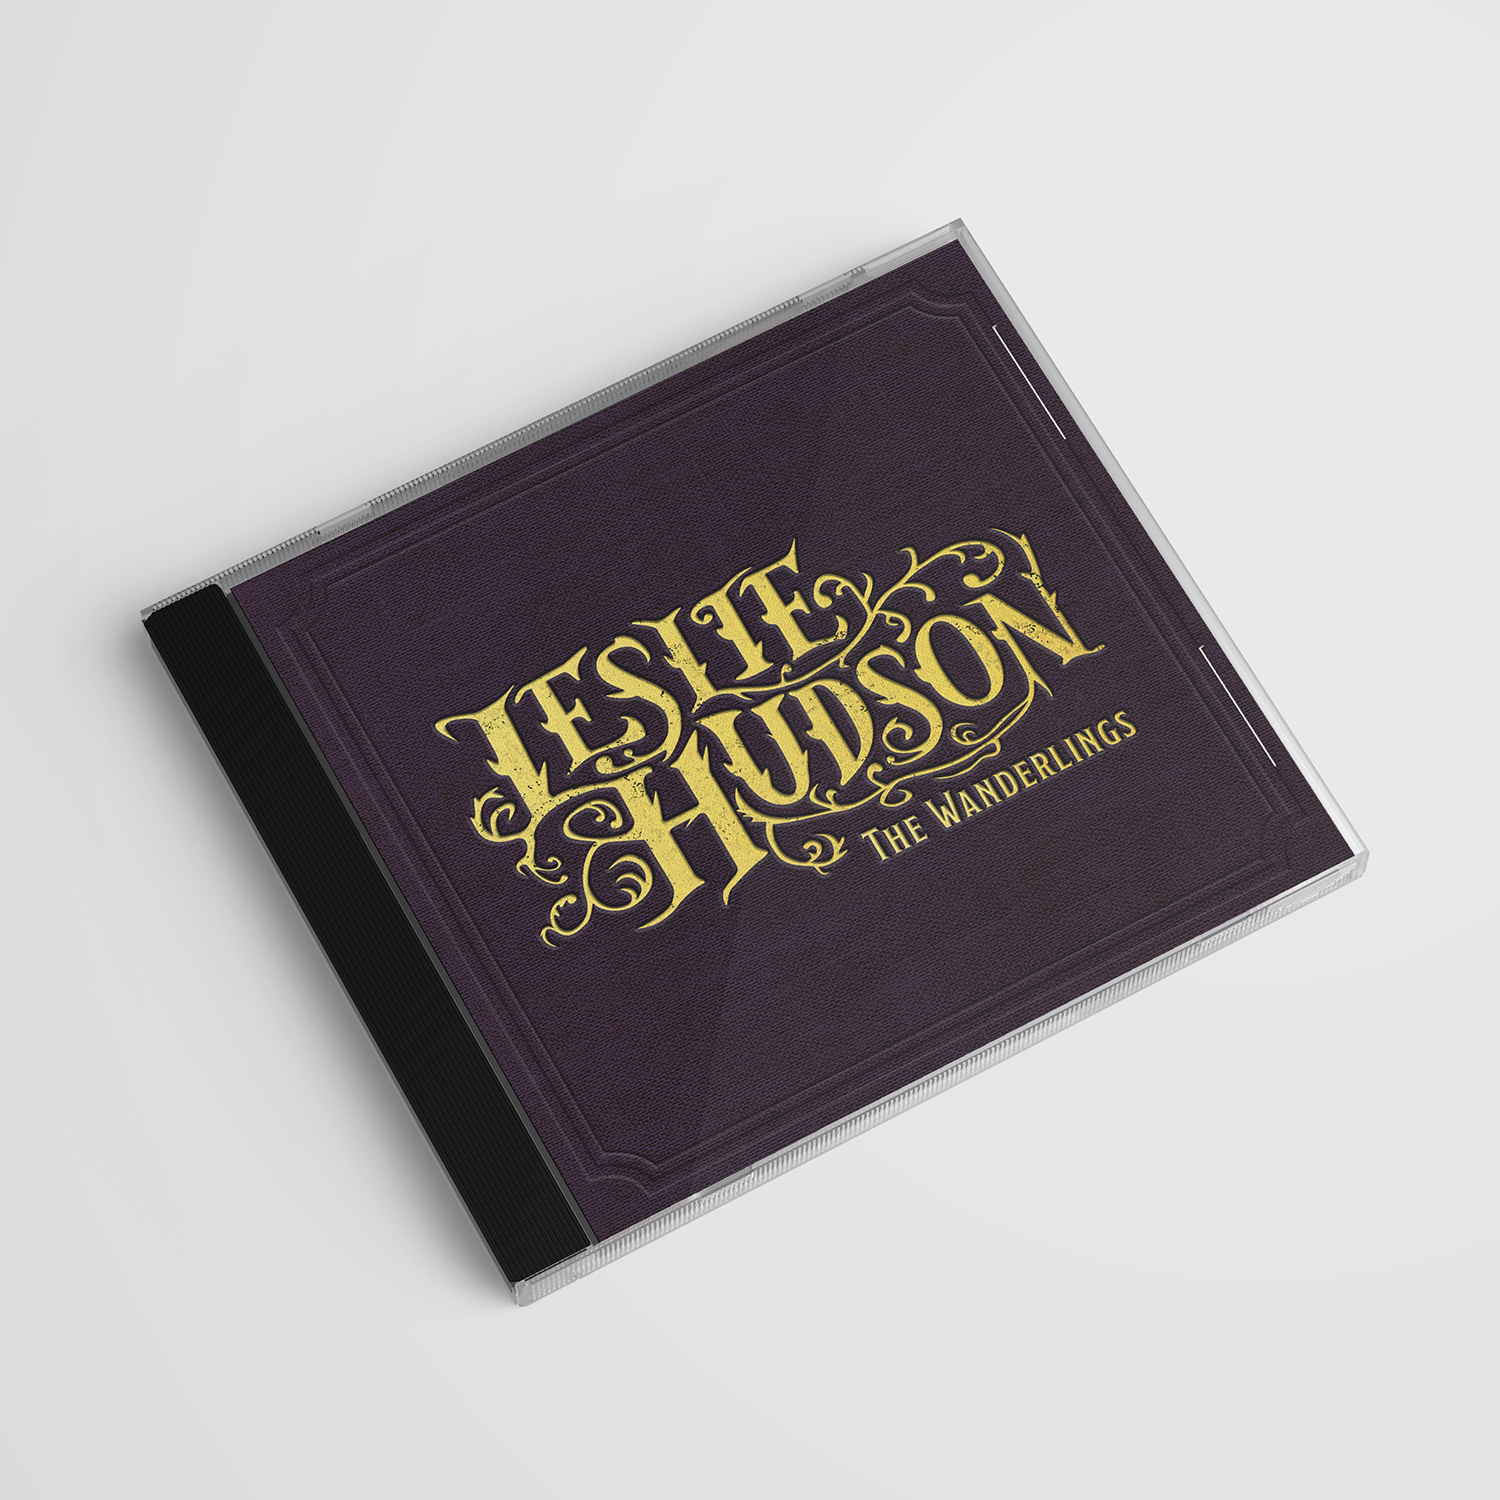 Leslie Hudson CD Cover